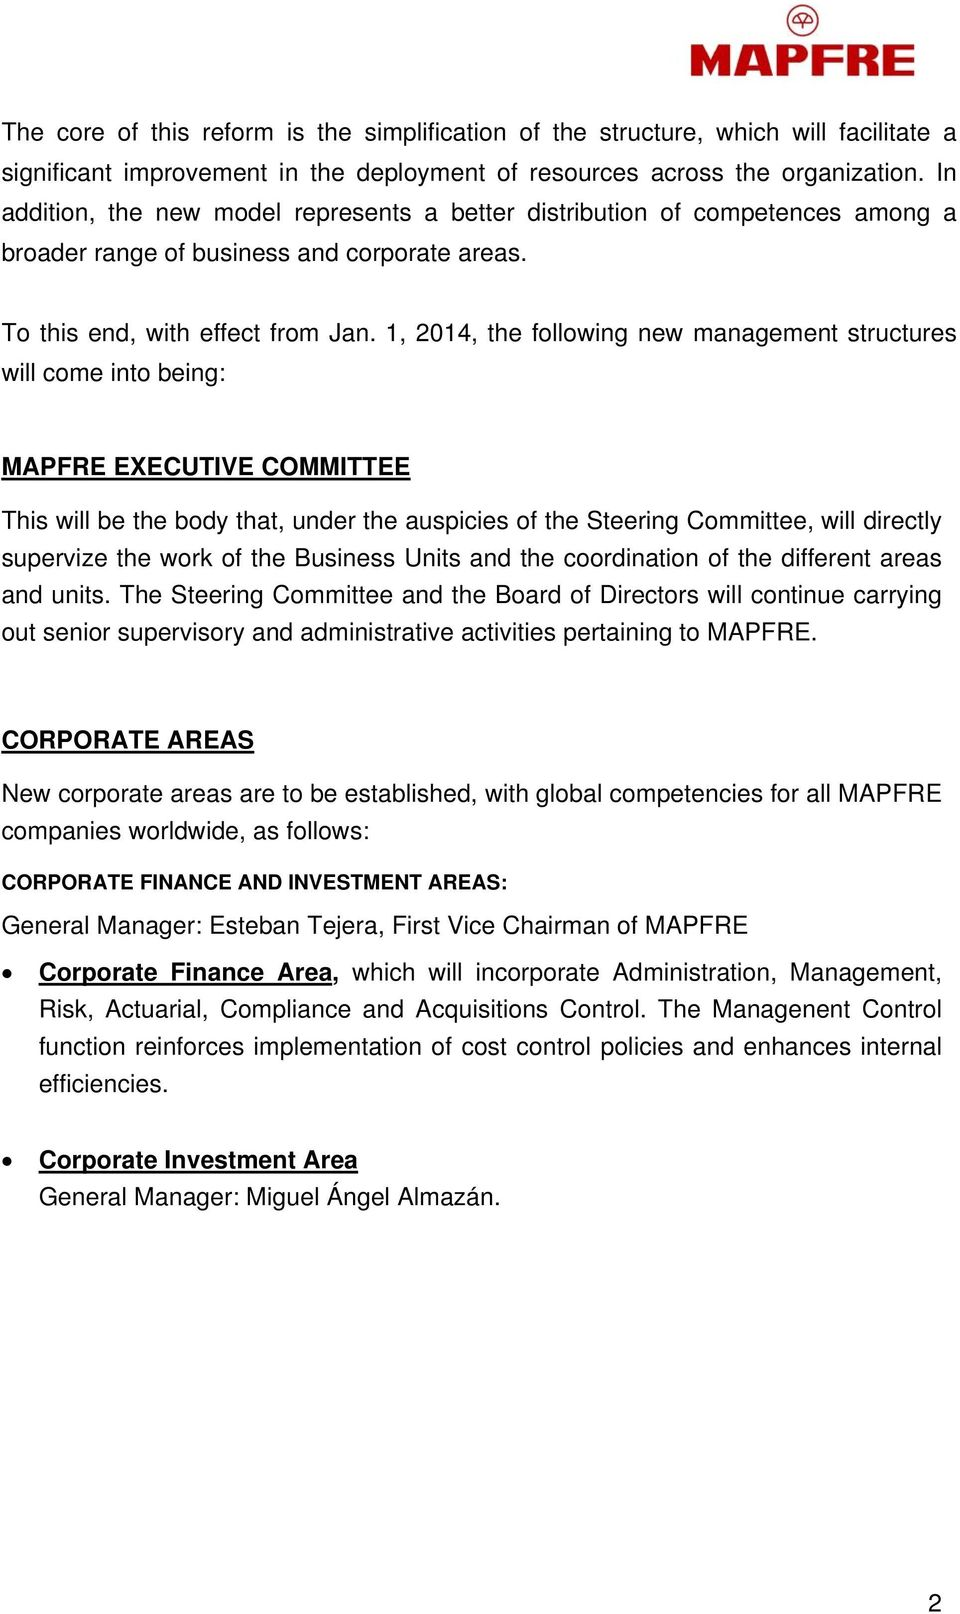 1, 2014, the following new management structures will come into being: MAPFRE EXECUTIVE COMMITTEE This will be the body that, under the auspicies of the Steering Committee, will directly supervize